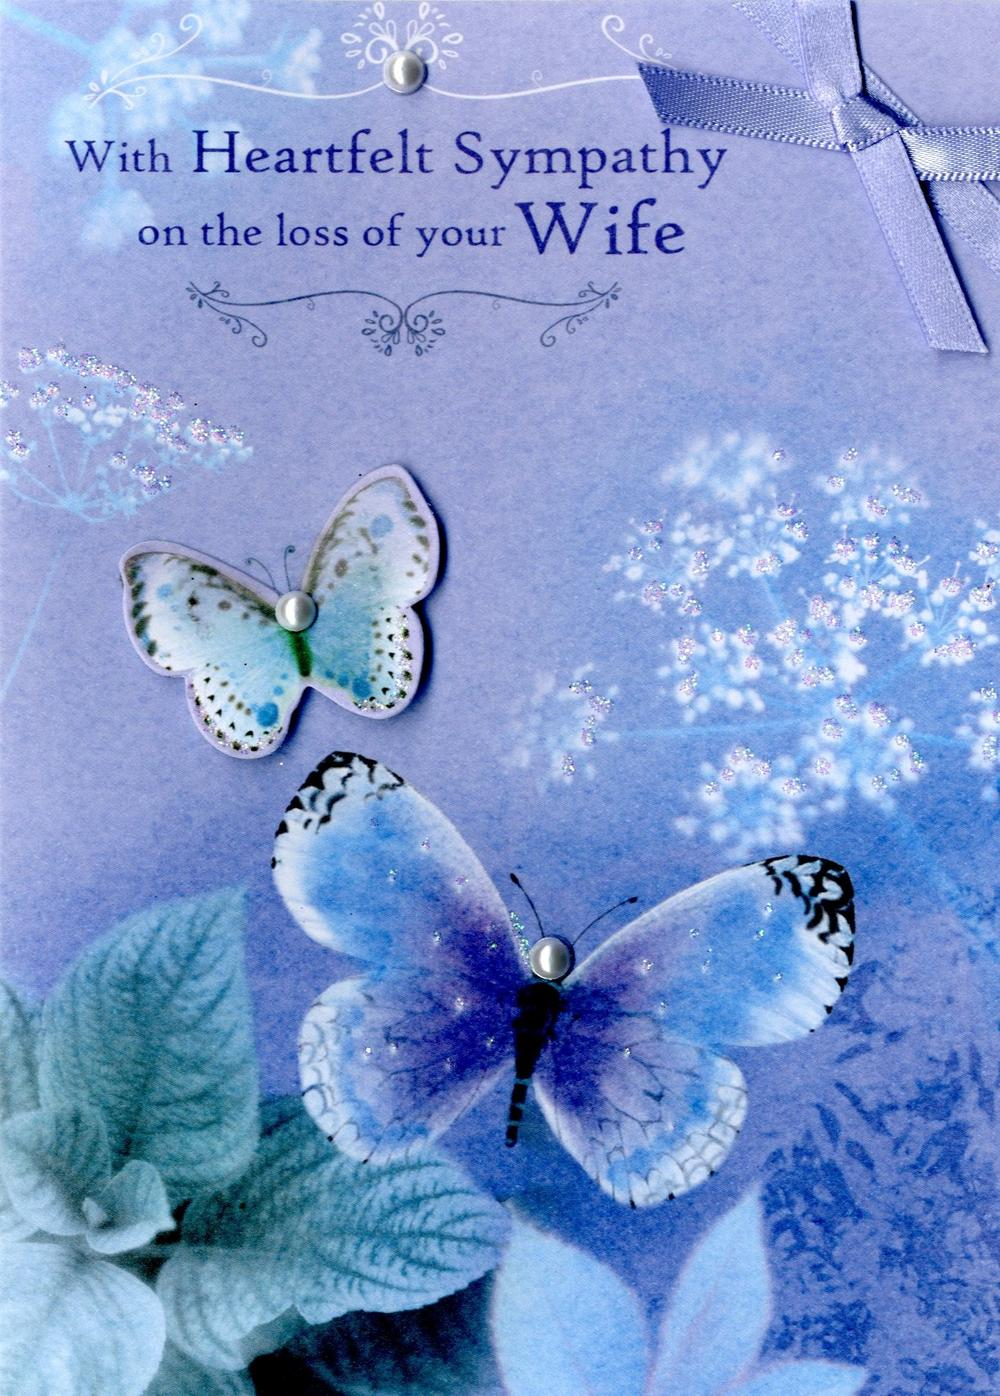 Loss Of Your Wife Heartfelt Sympathy Greeting Card